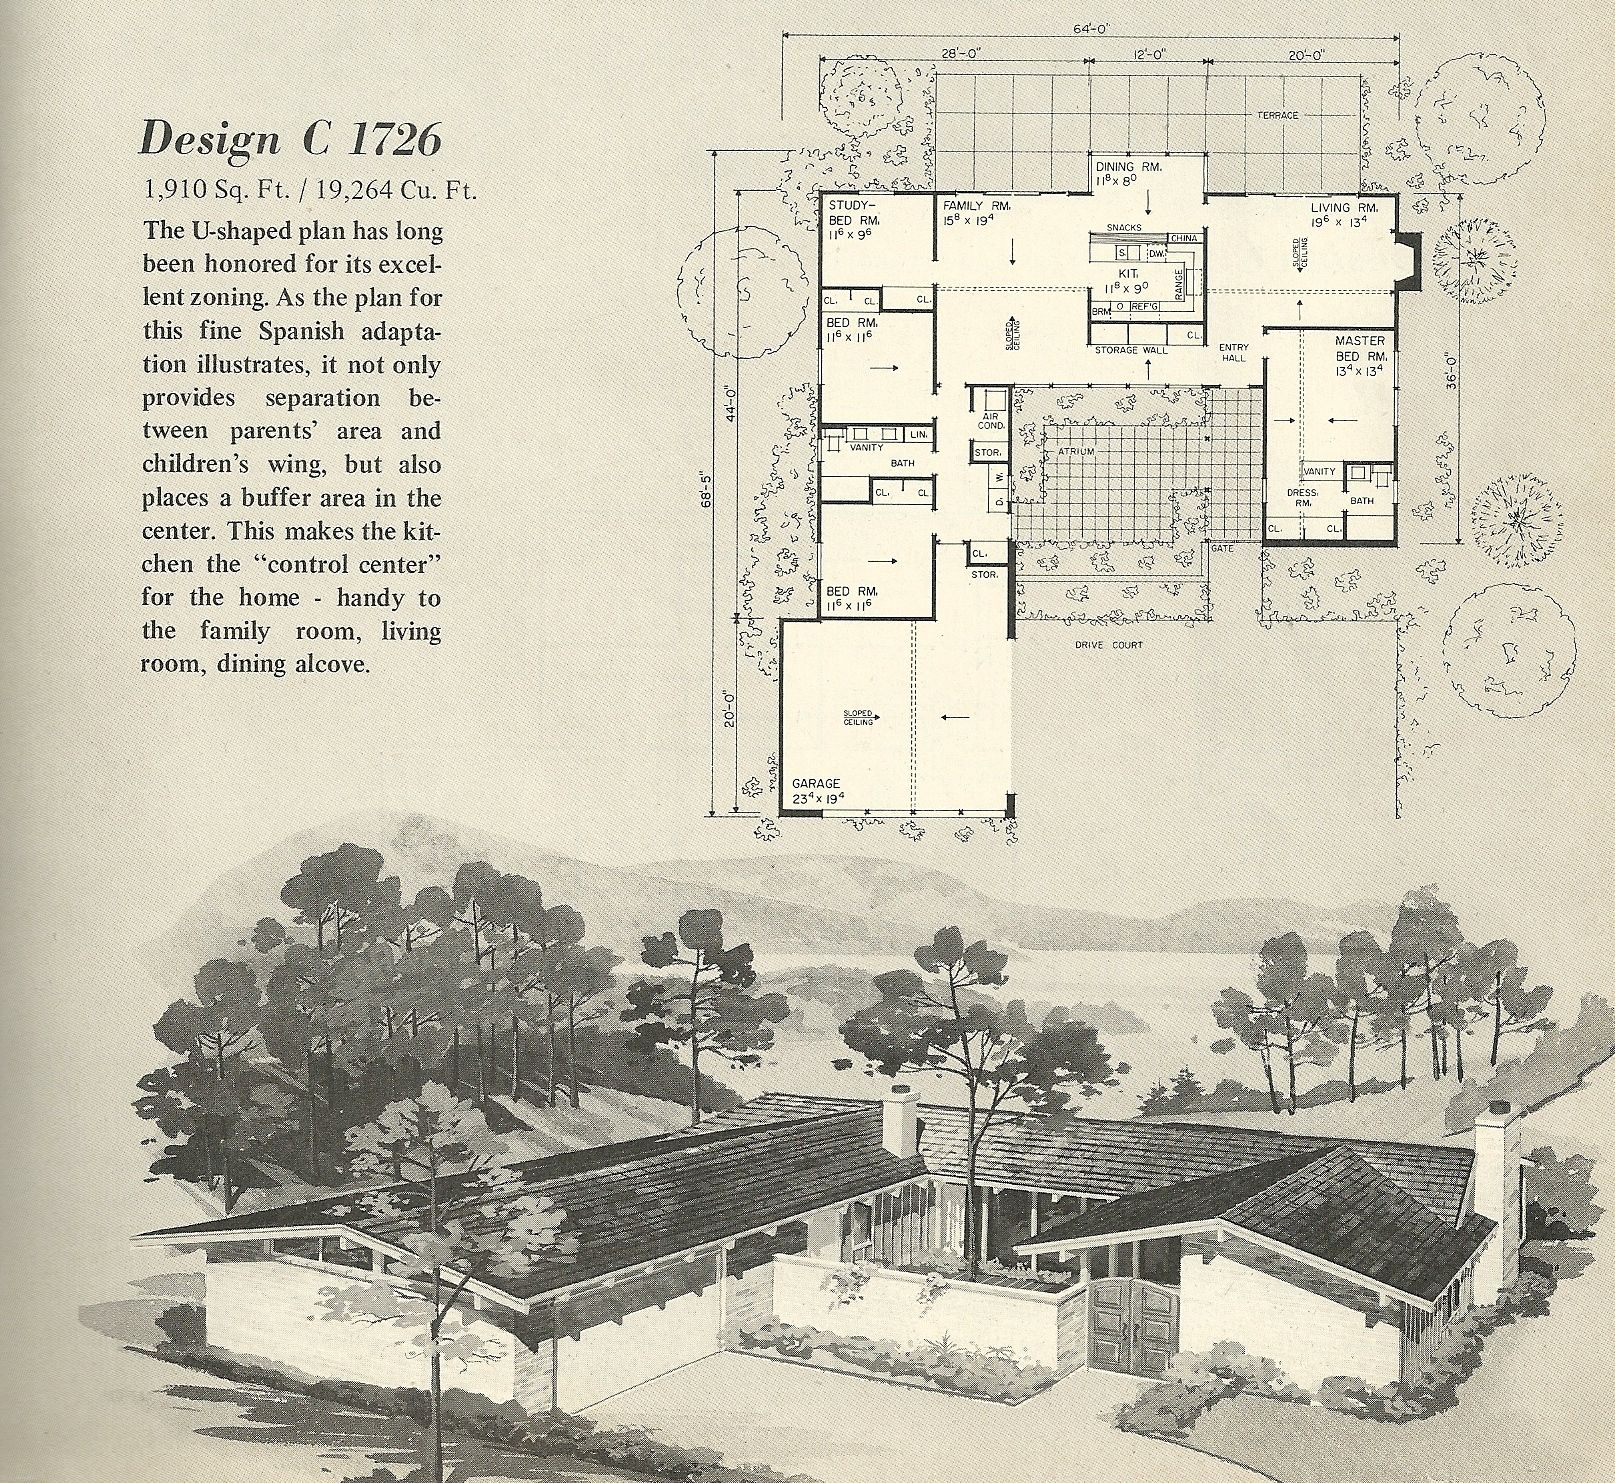 vintage house plan vintage house plans 1960s spanish style and mid century modern - Mid Century Modern Home Plans